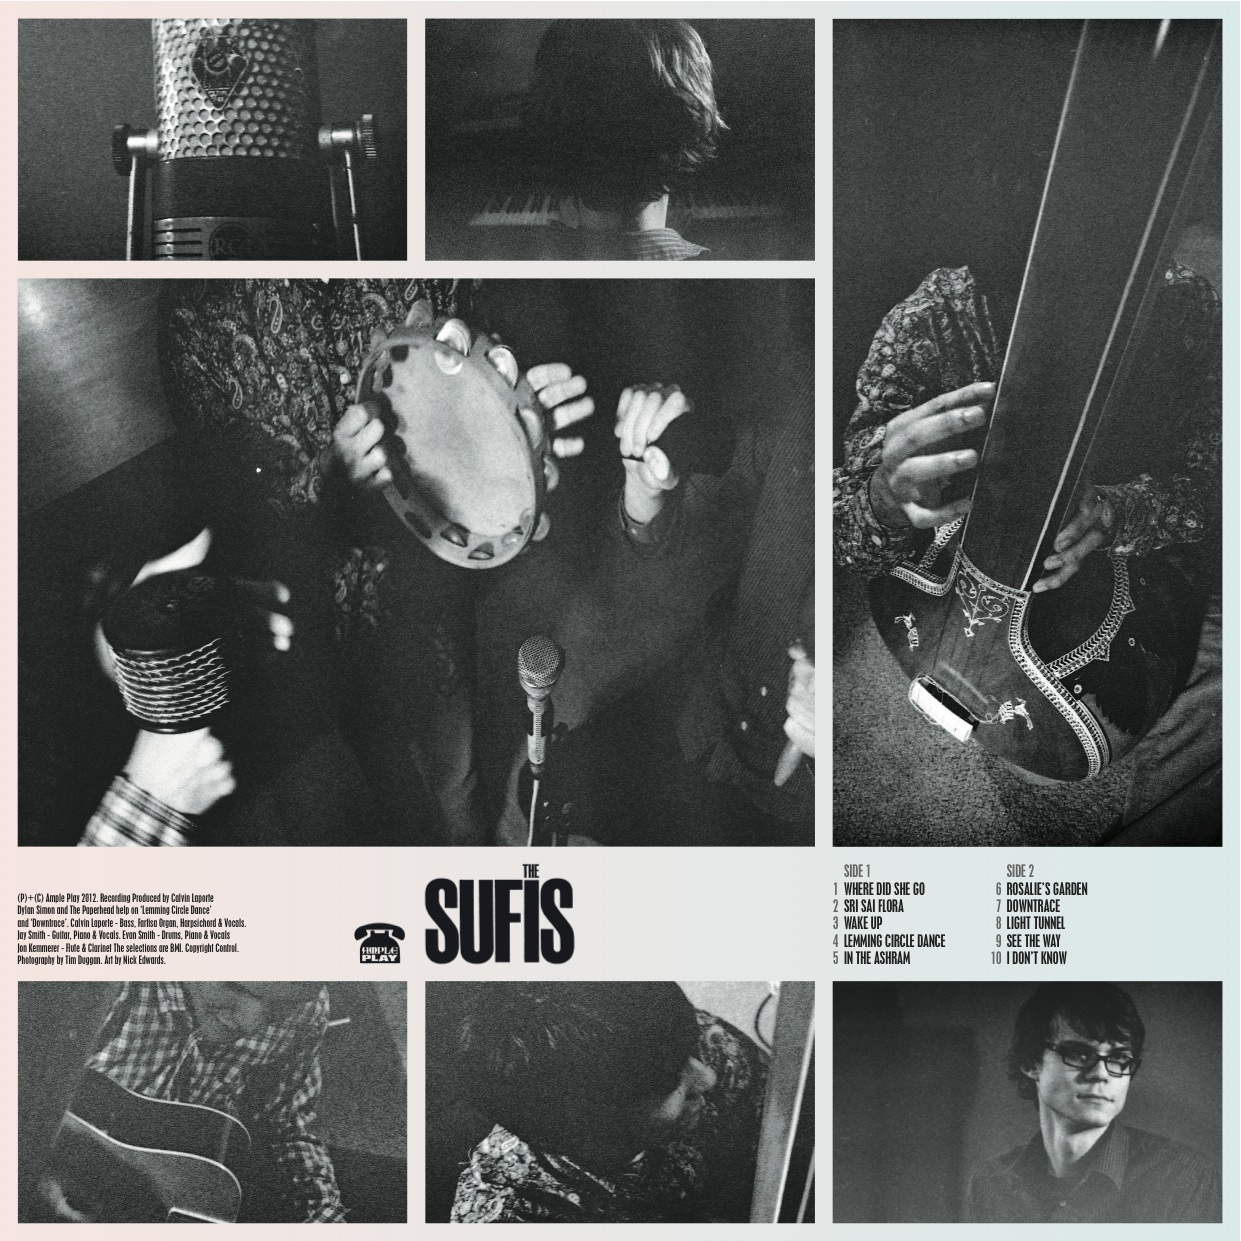 The Sufis longplaying album by The SUFIS - on vinyl & MP3 formats